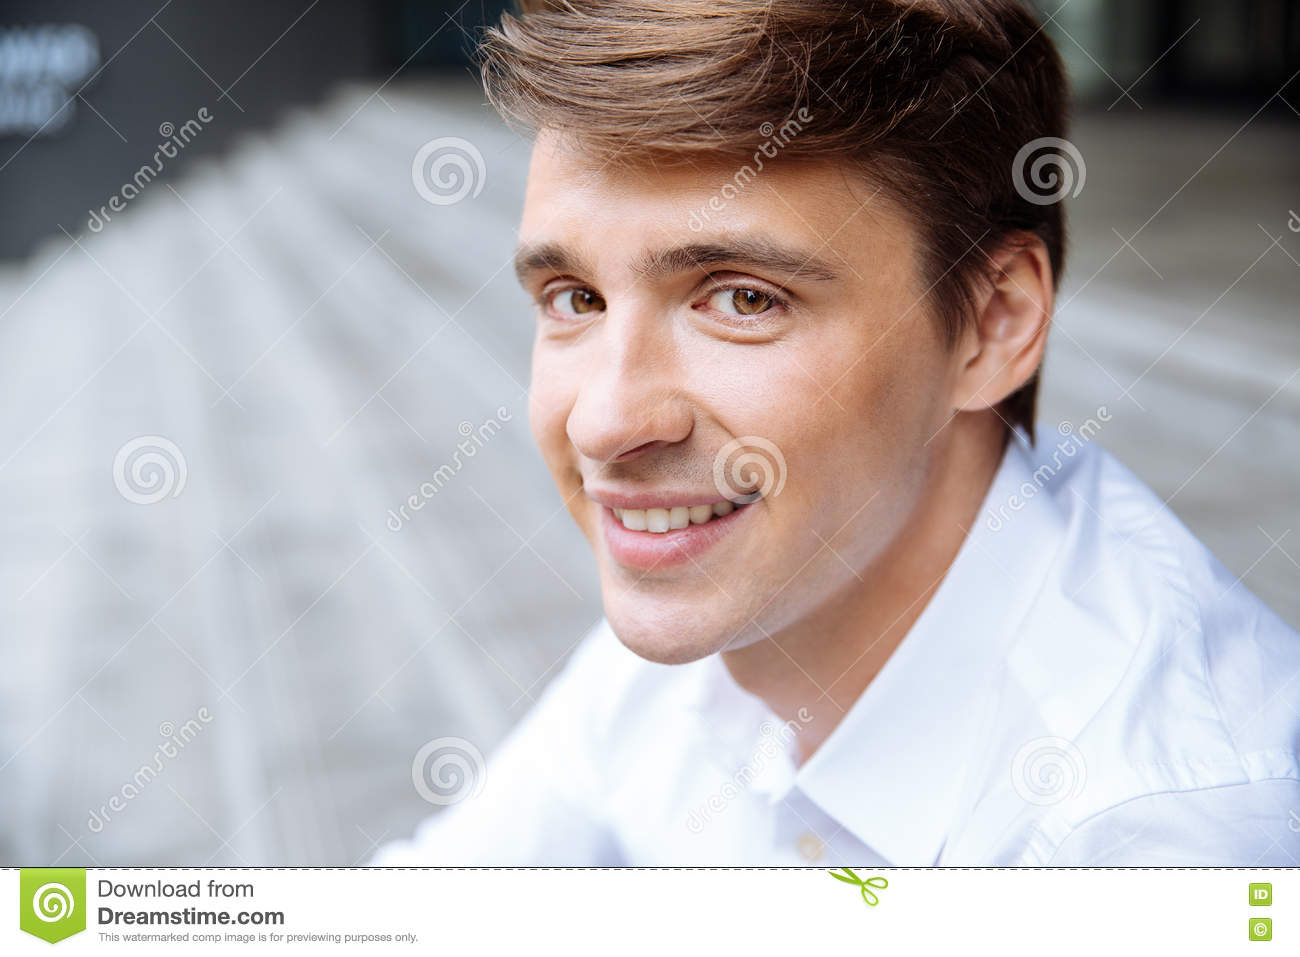 Smiling young businessman in white shirt sitting outdoors